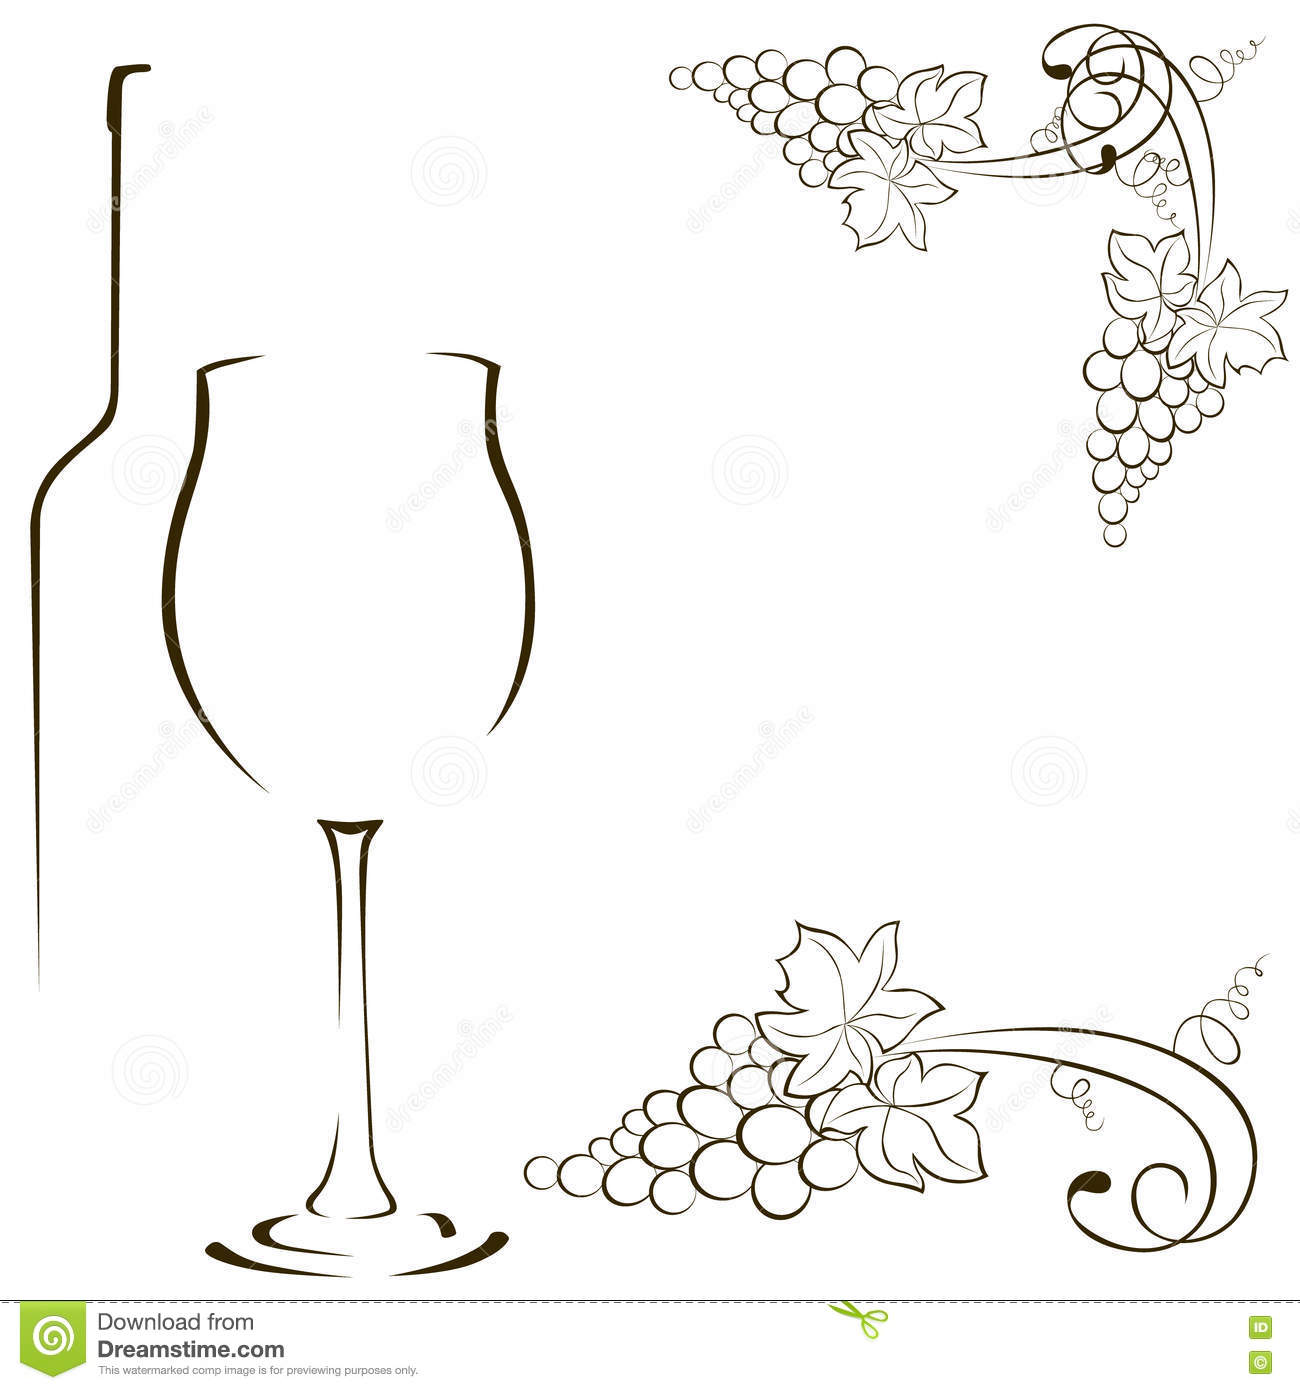 Line Drawing Grapes : Silhouettes of glasses and bottles wine bunch